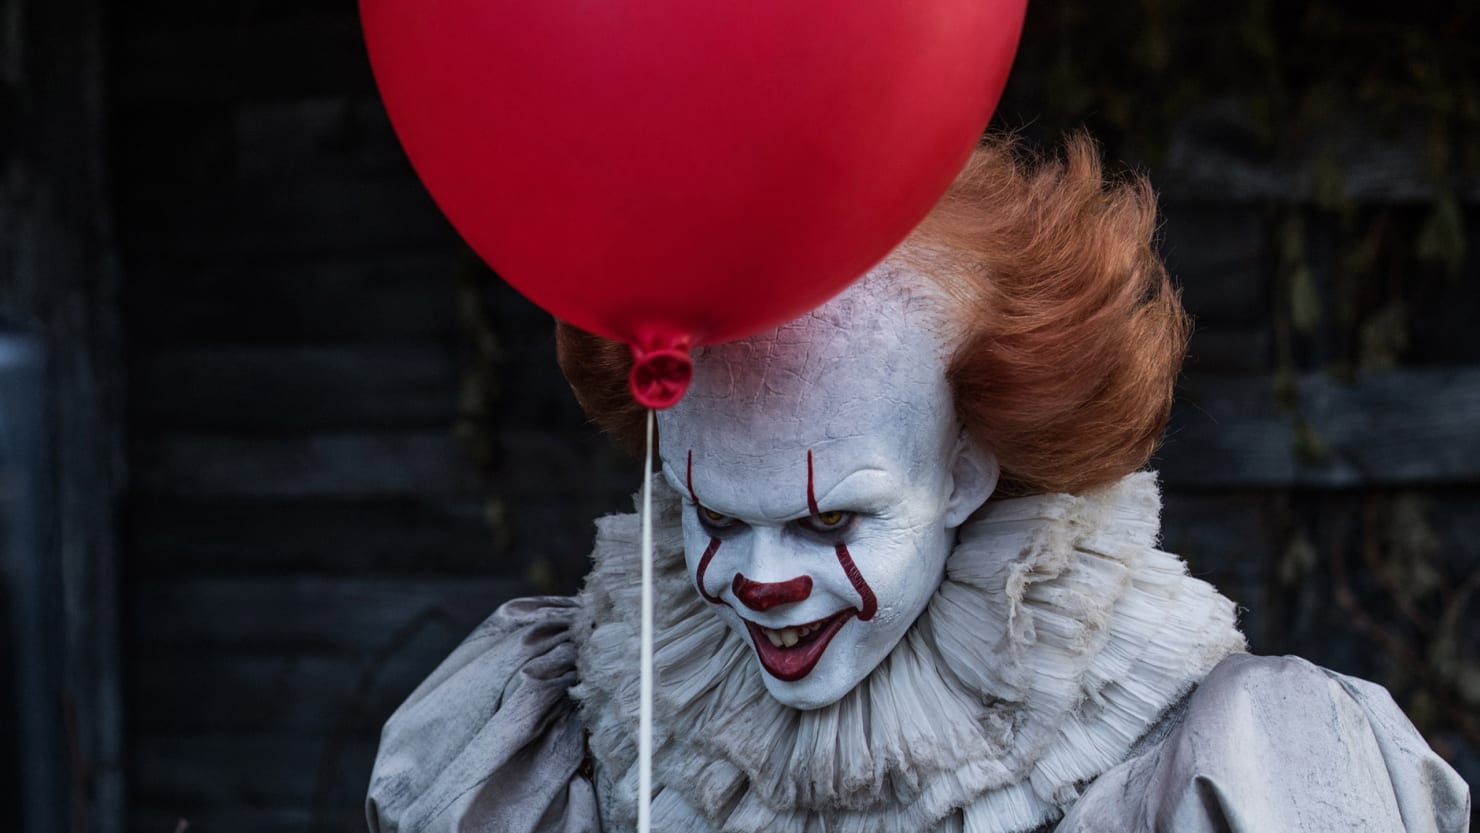 Funny and Scary Clown Animated Gifs - Best